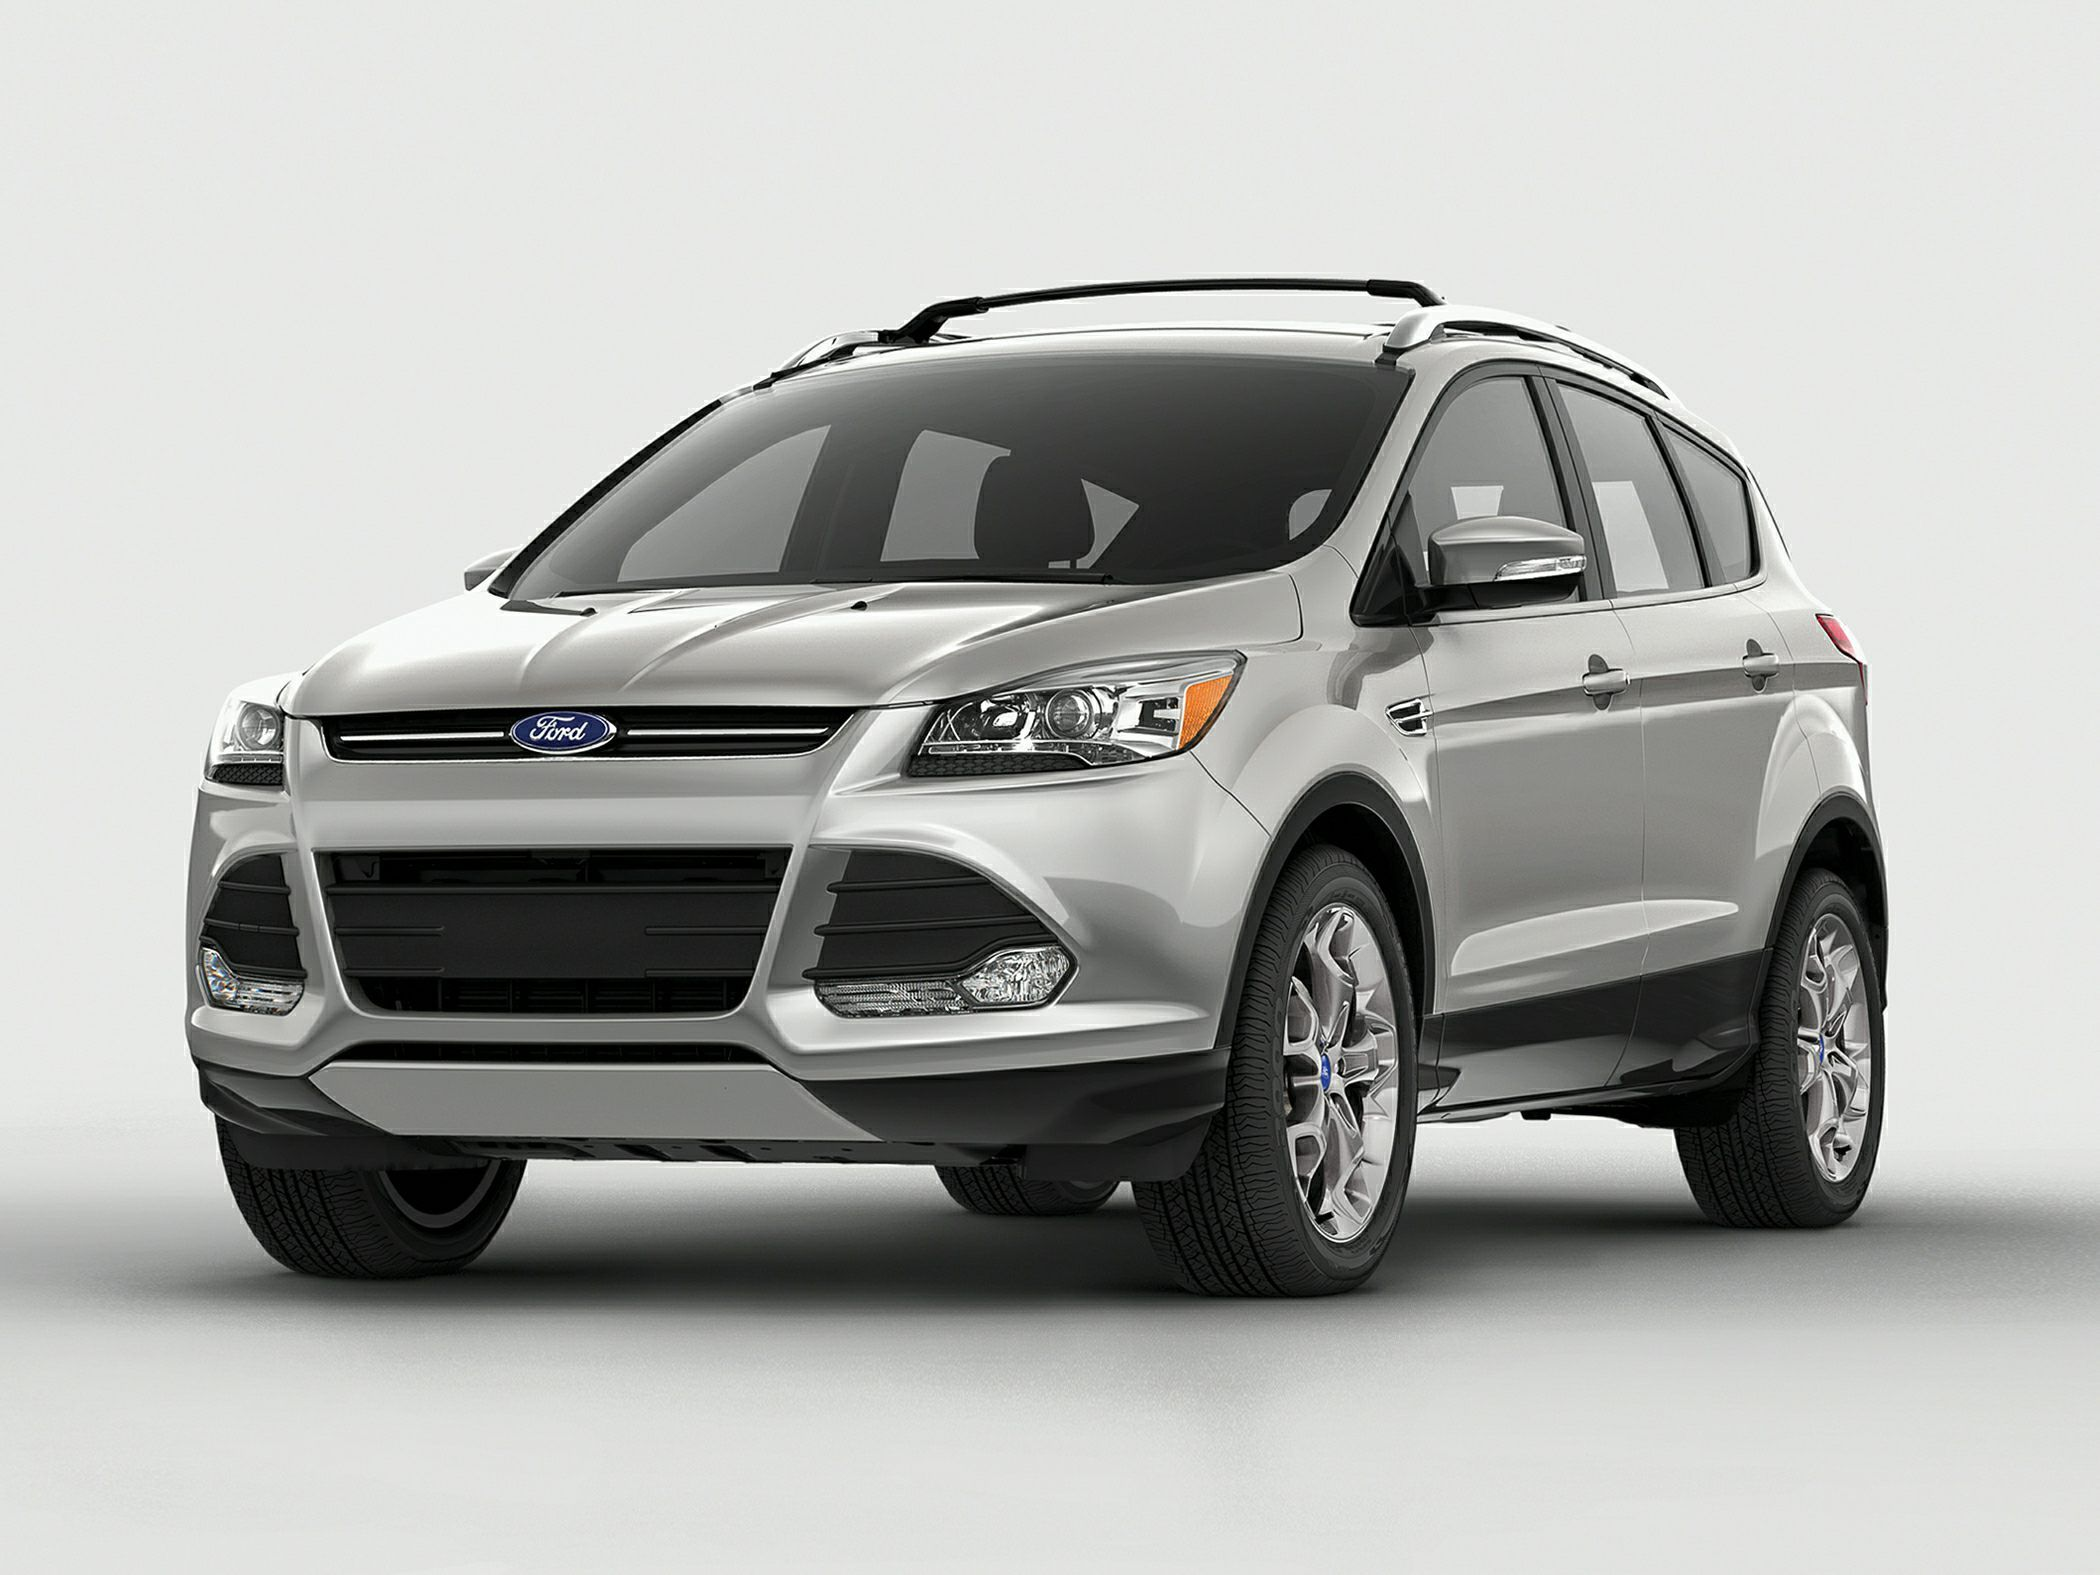 2014 ford escape wallpaper ford 2014 escape ford http